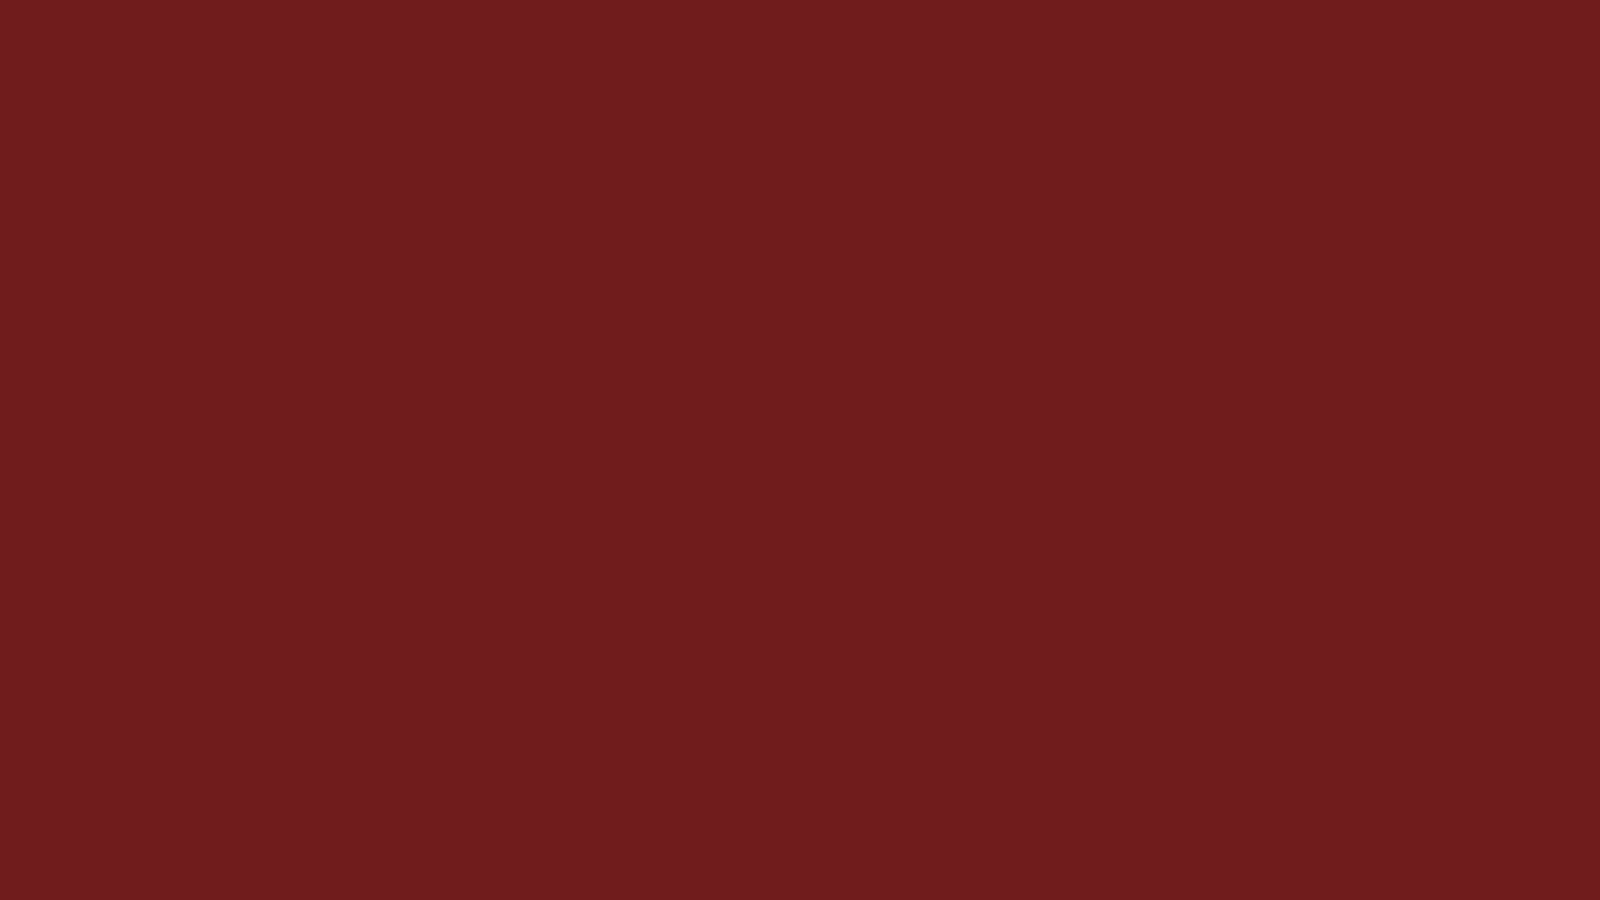 1600x900 Prune Solid Color Background